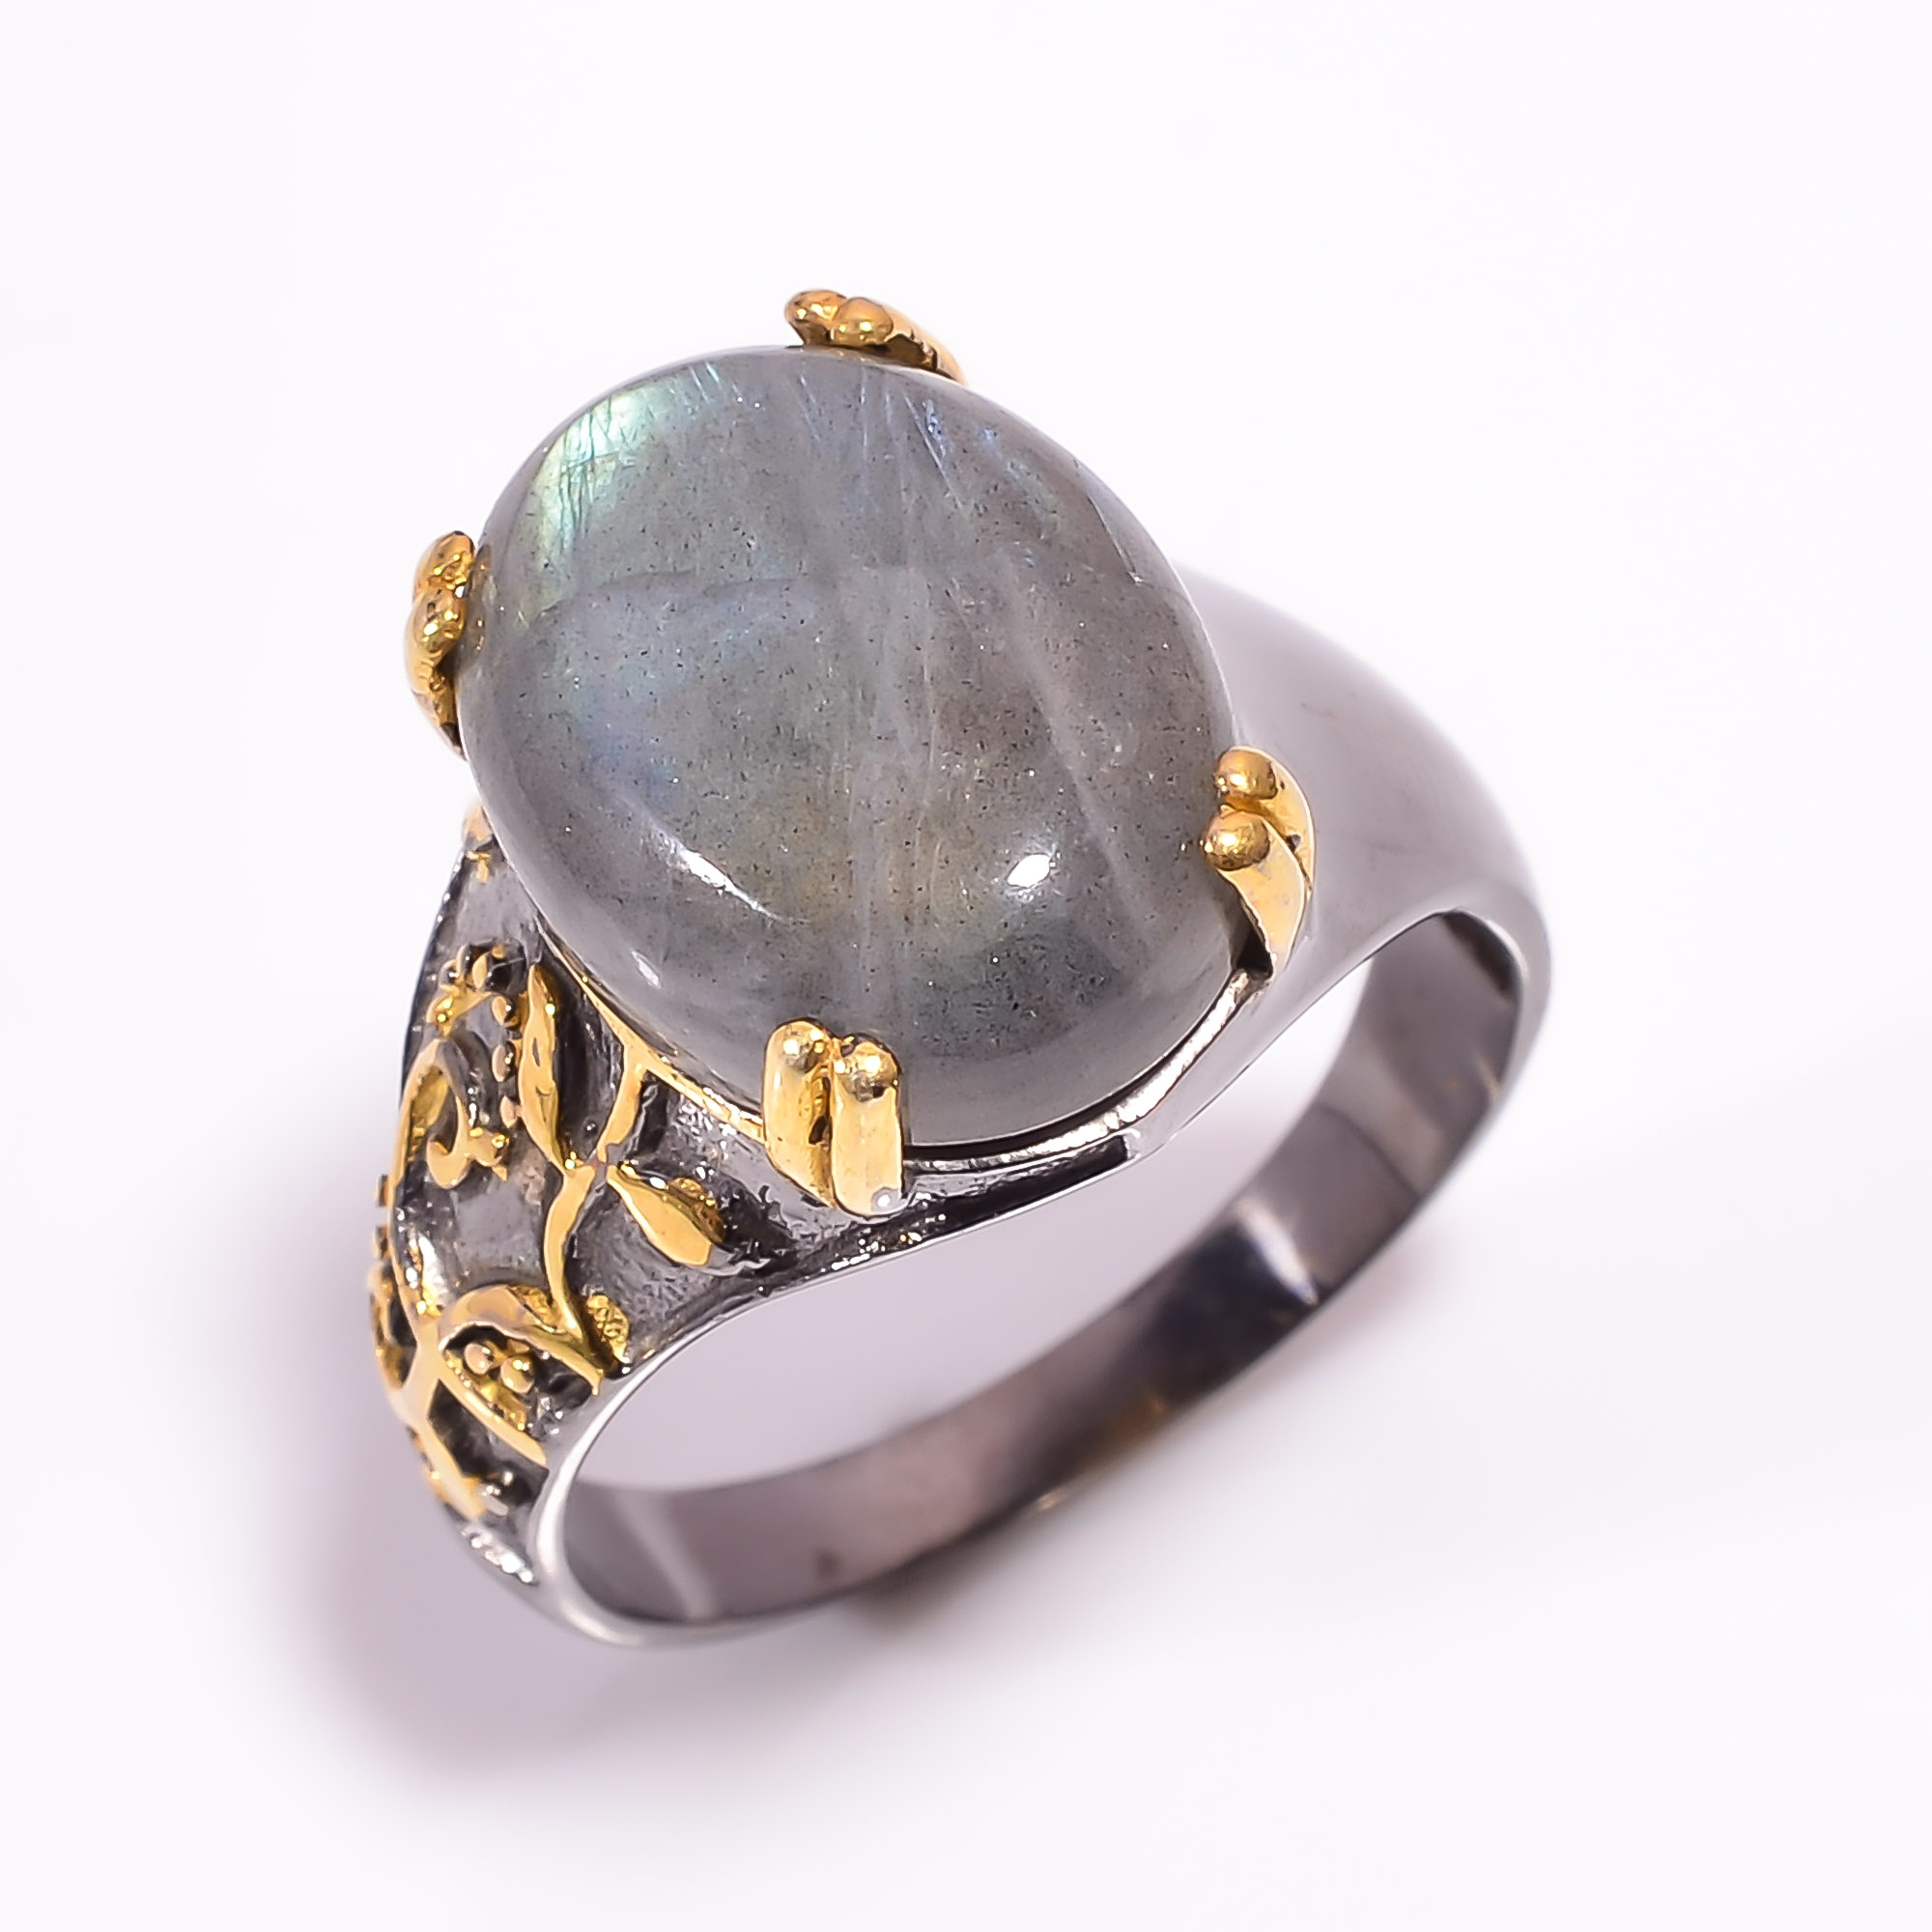 925 Sterling Silver Gold Plated & Black Rhodium Two Tone Labradorite Ring Size US 10.25